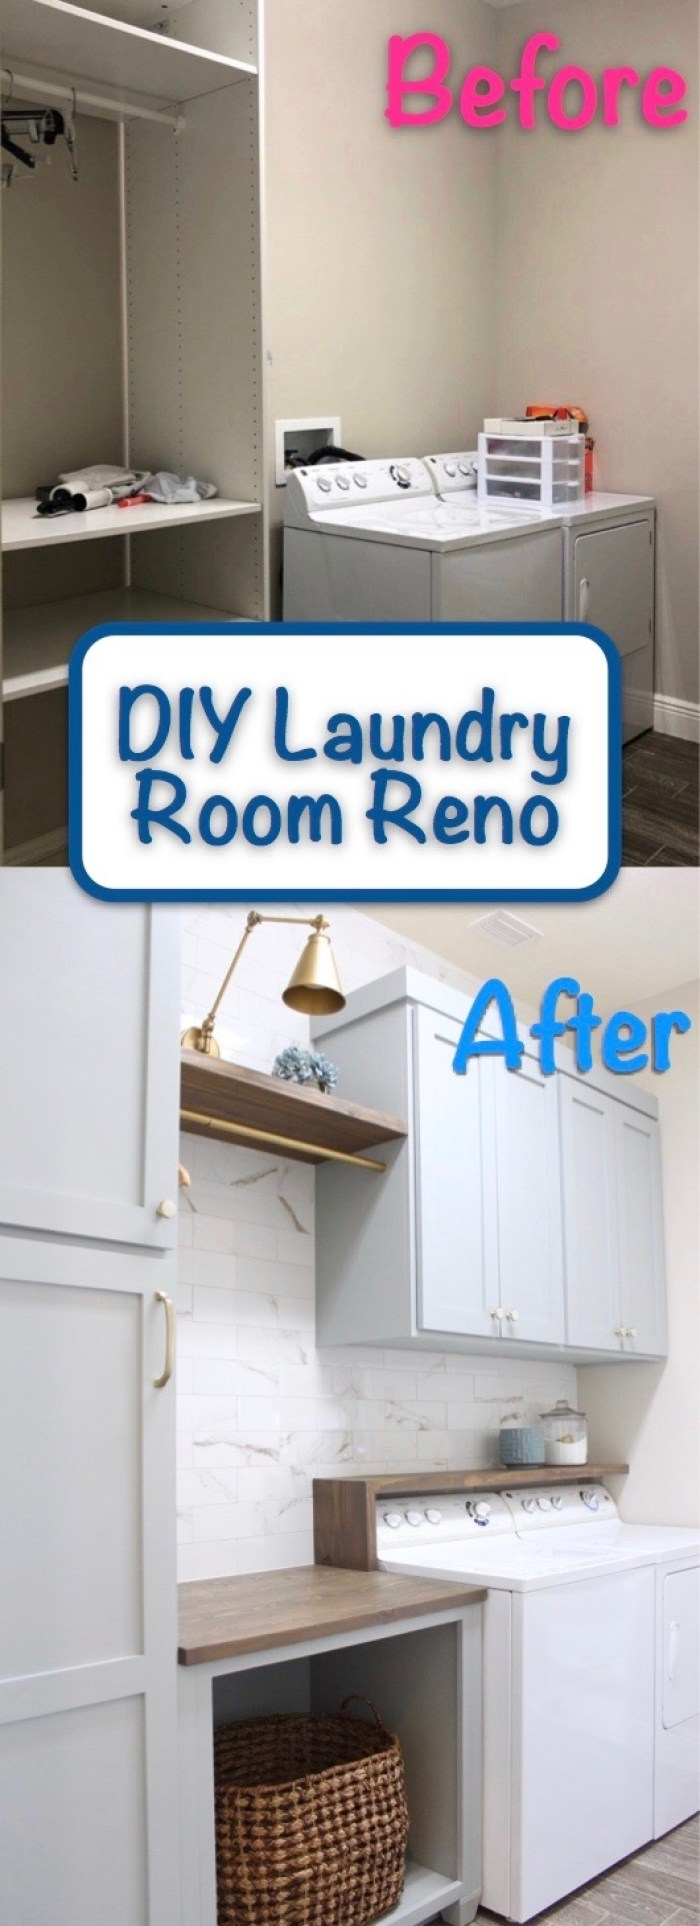 laundry_room_diy_reno_blue_painted_cabinets_tile_wall_marble_gold_sconce_light_before_after